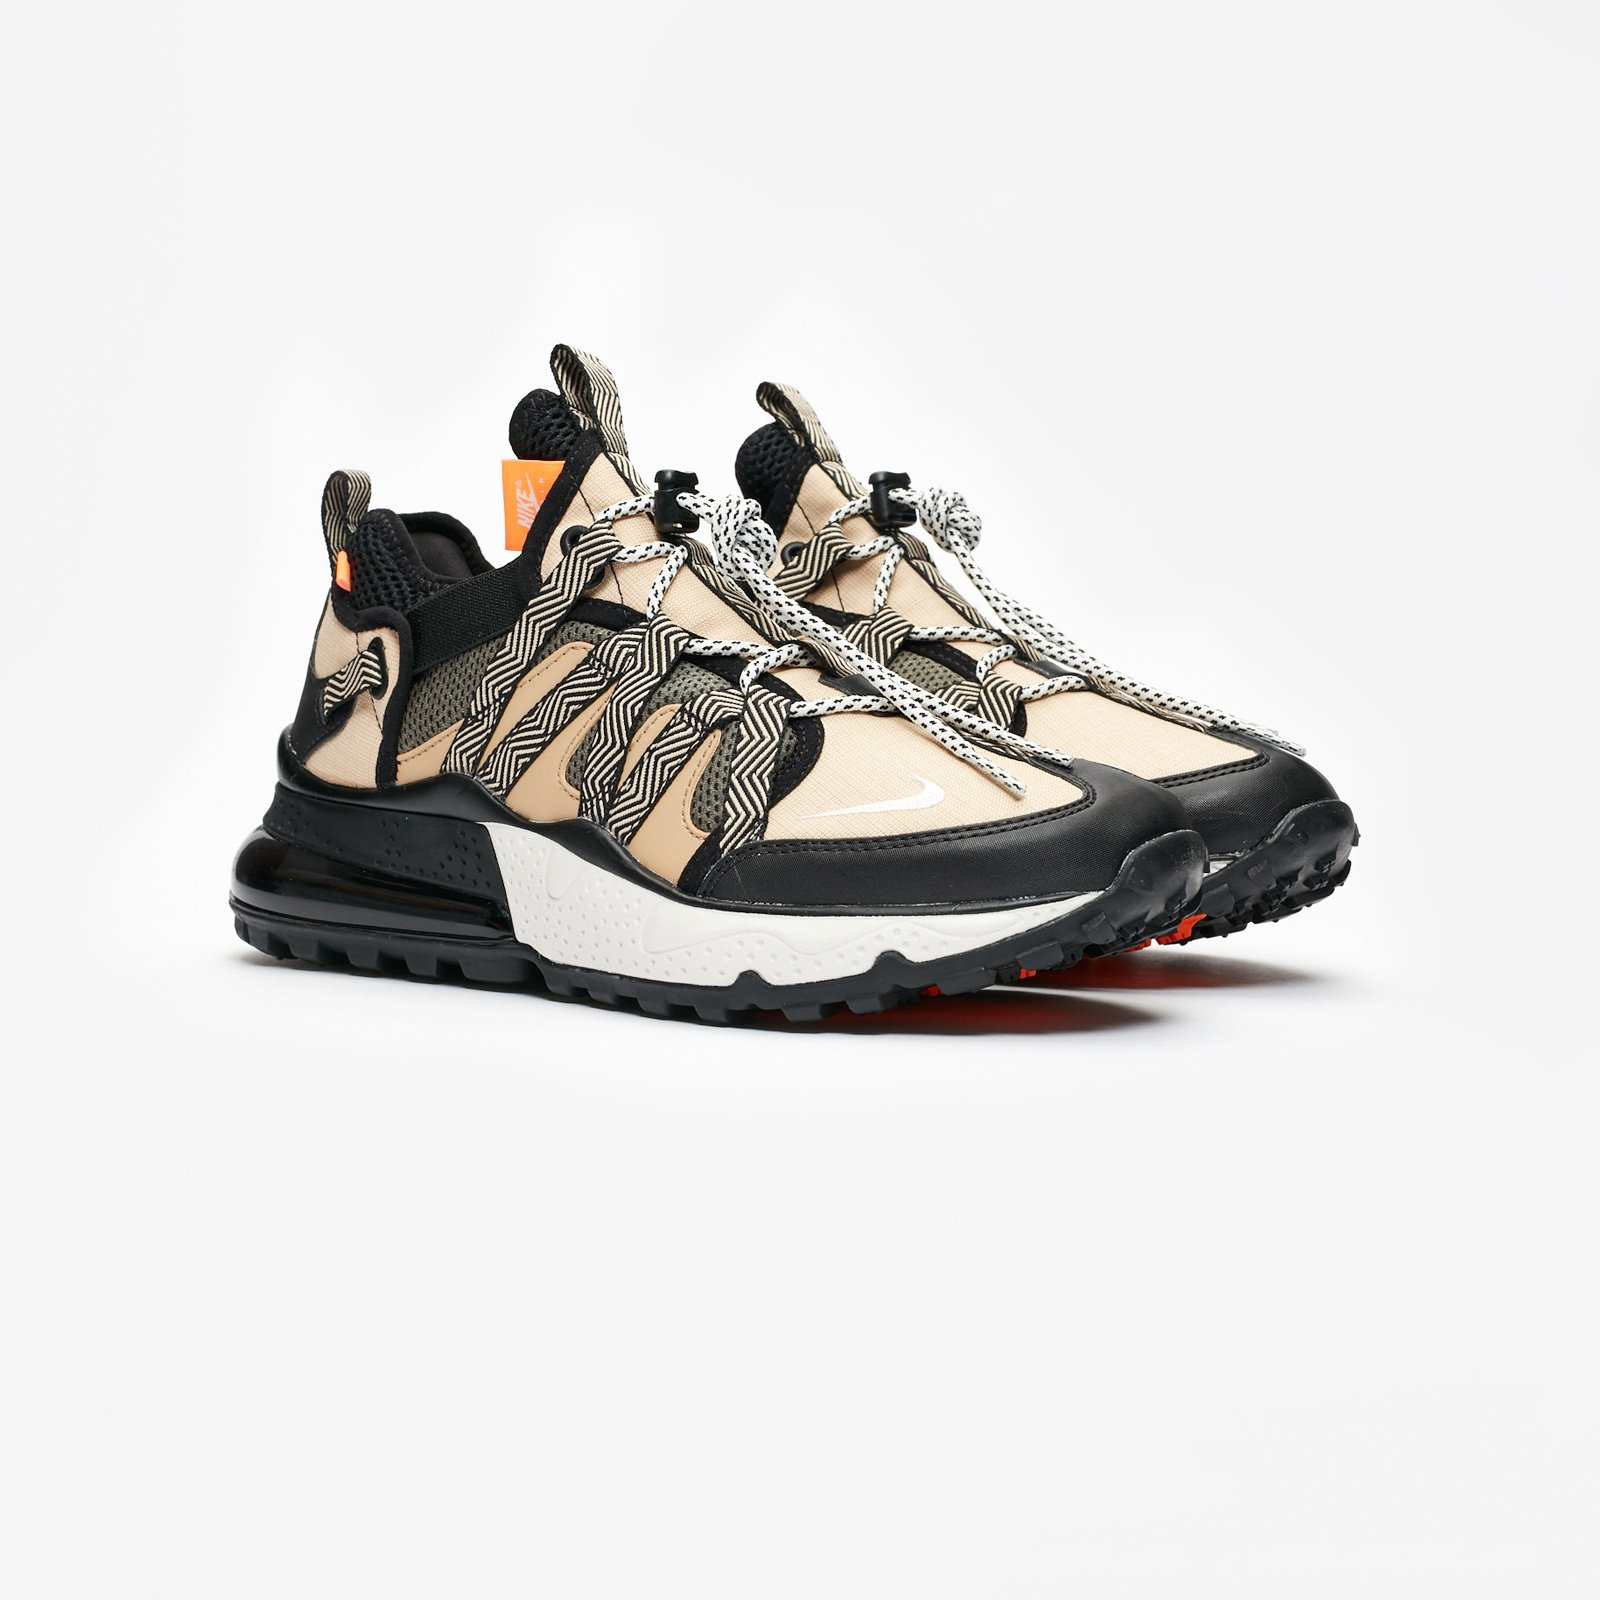 the latest ce6bb f7576 Nike Air Max 270 Bowfin - Aj7200-001 - Sneakersnstuff ...